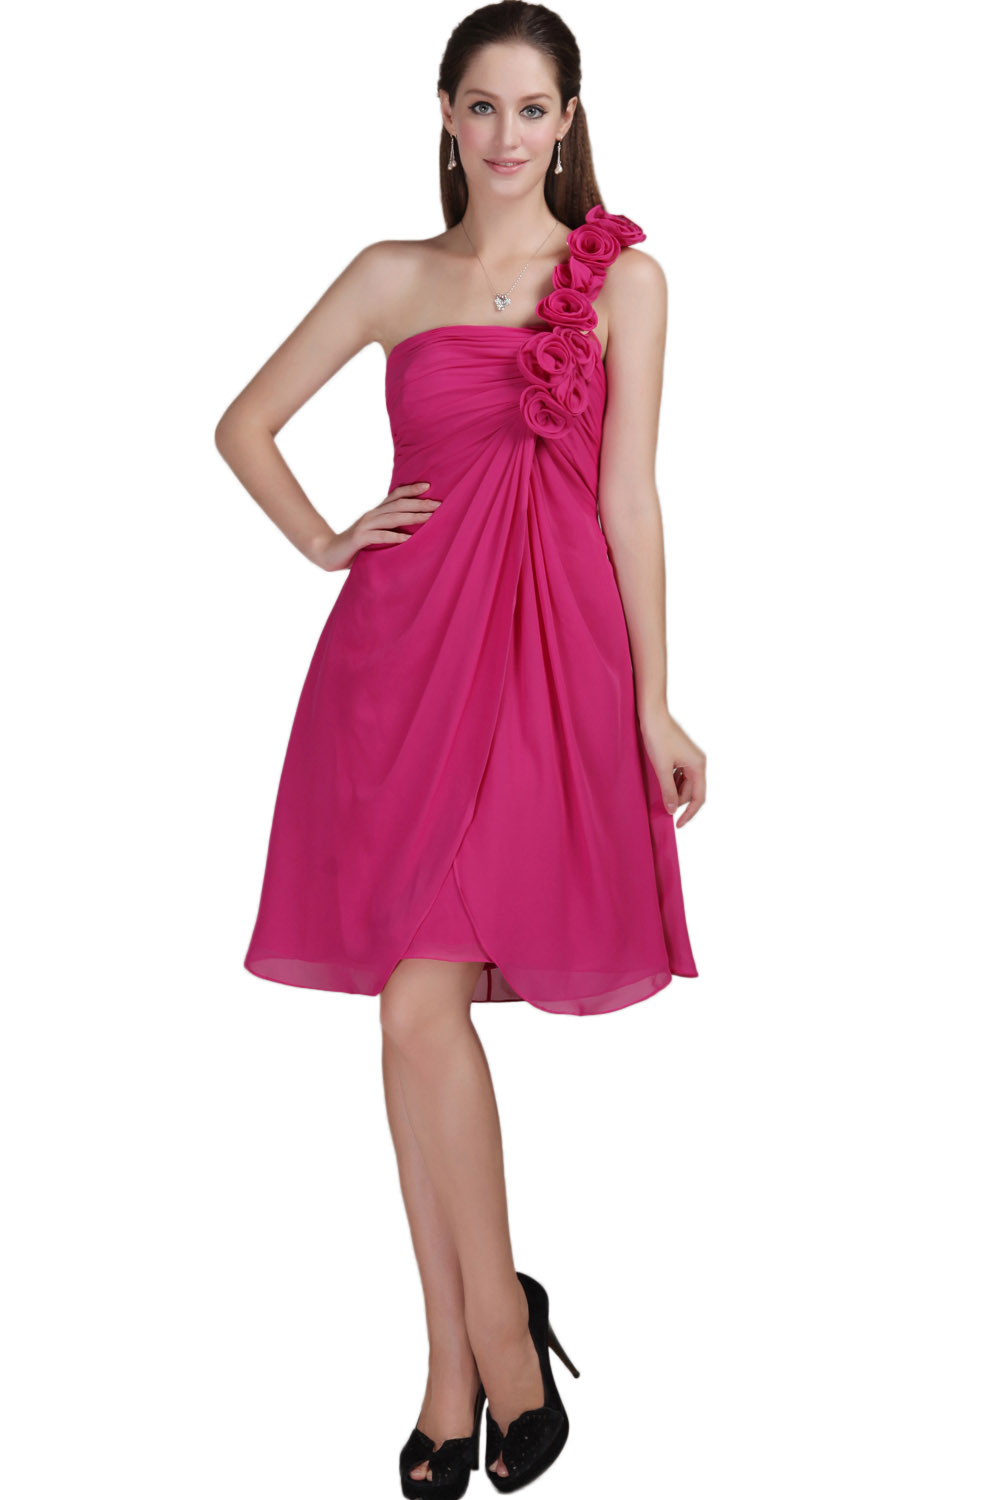 Sheath/Column One Shoulder Knee-length Taffeta Cocktail Dress